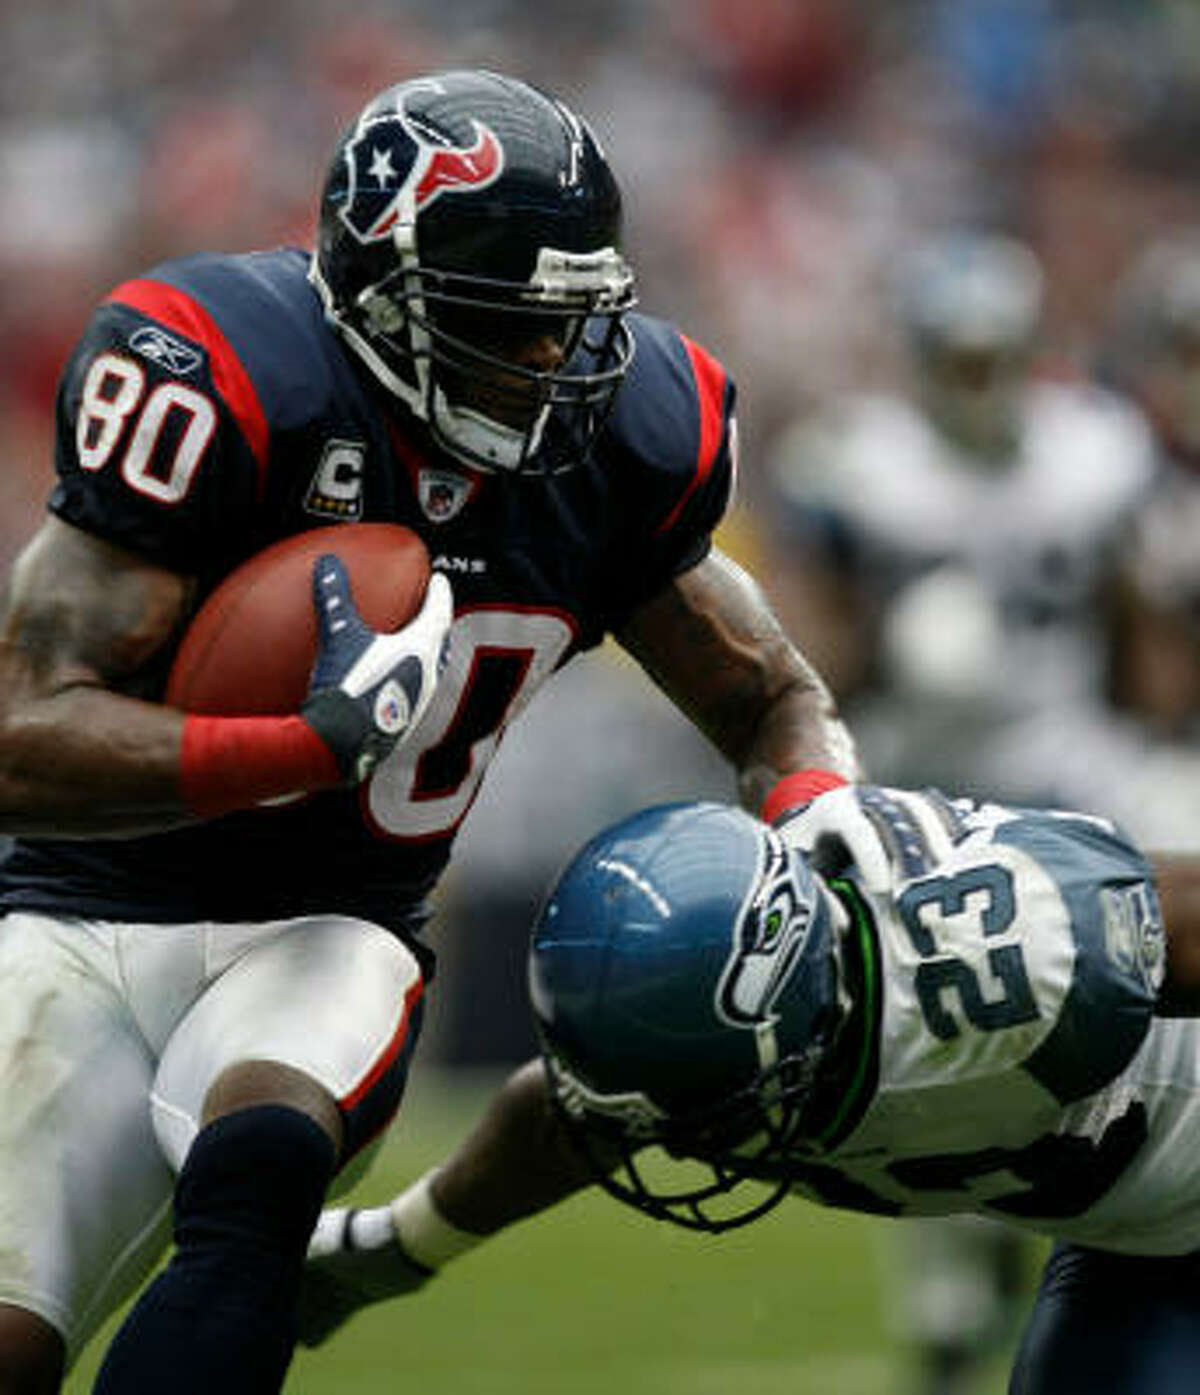 As Seattle's Marcus Trufant (23) learned, Andre Johnson was an irresistible force for the Texans on Sunday.